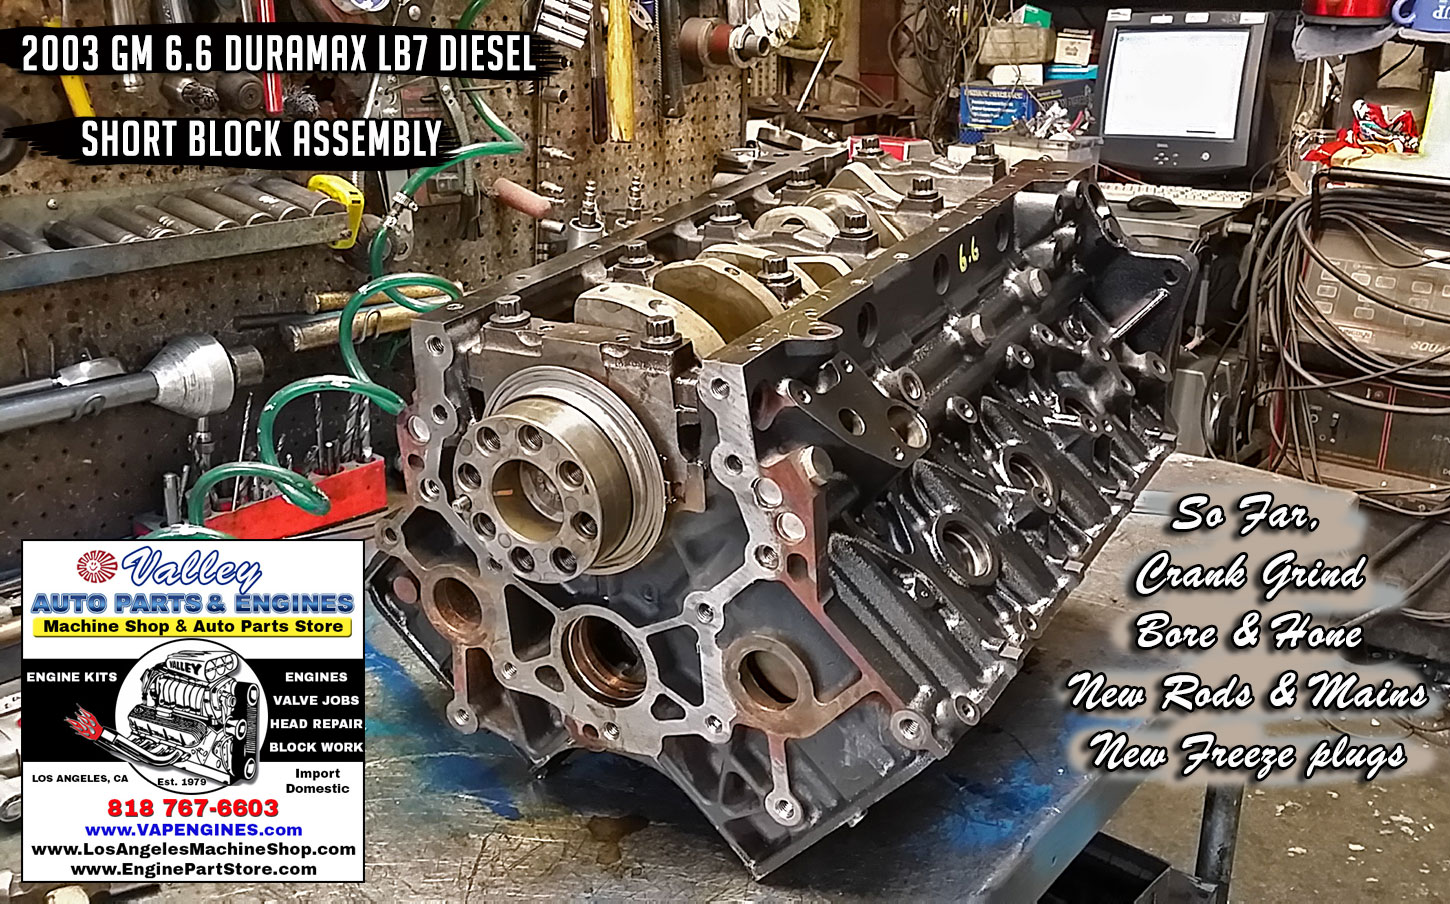 hight resolution of 03 gm 6 6 lb7 duramax 32v v8 remanufactured engine los angeles machine shop engine rebuilder auto parts store